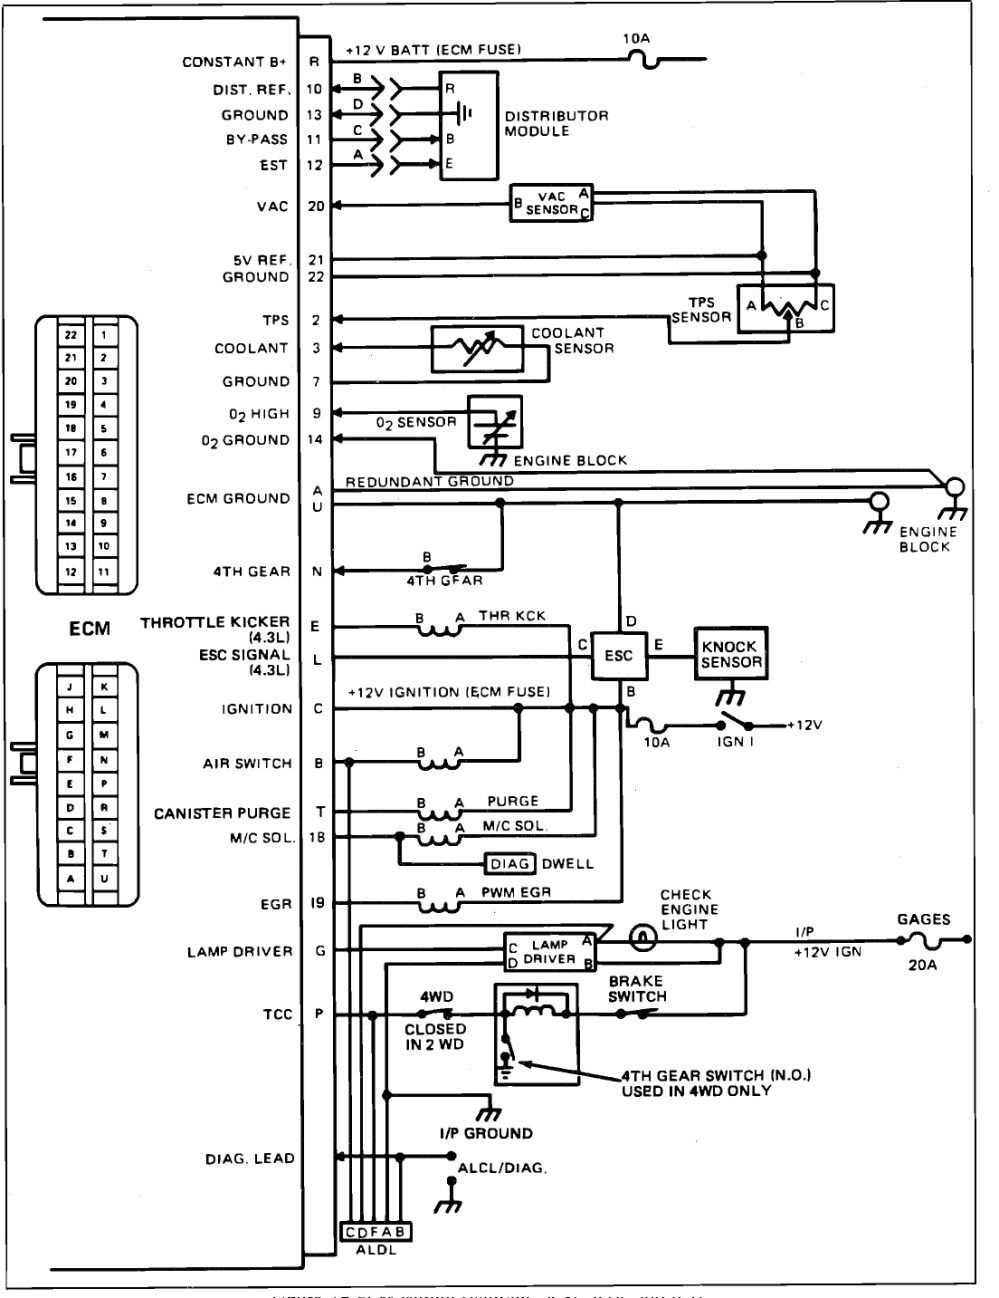 medium resolution of 91 chevy lumina wiring diagram images gallery